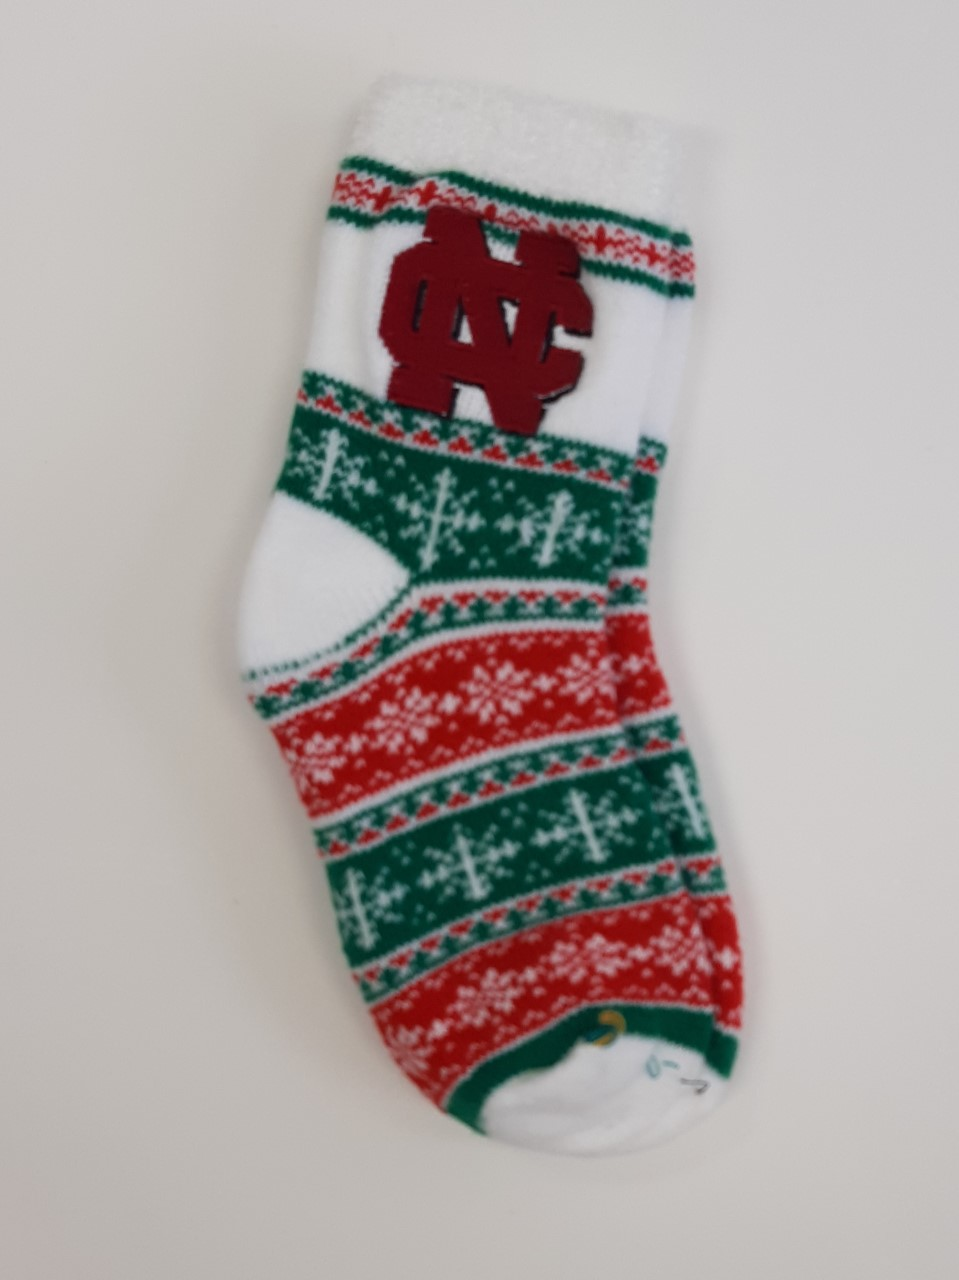 Image for the Holiday Socks product